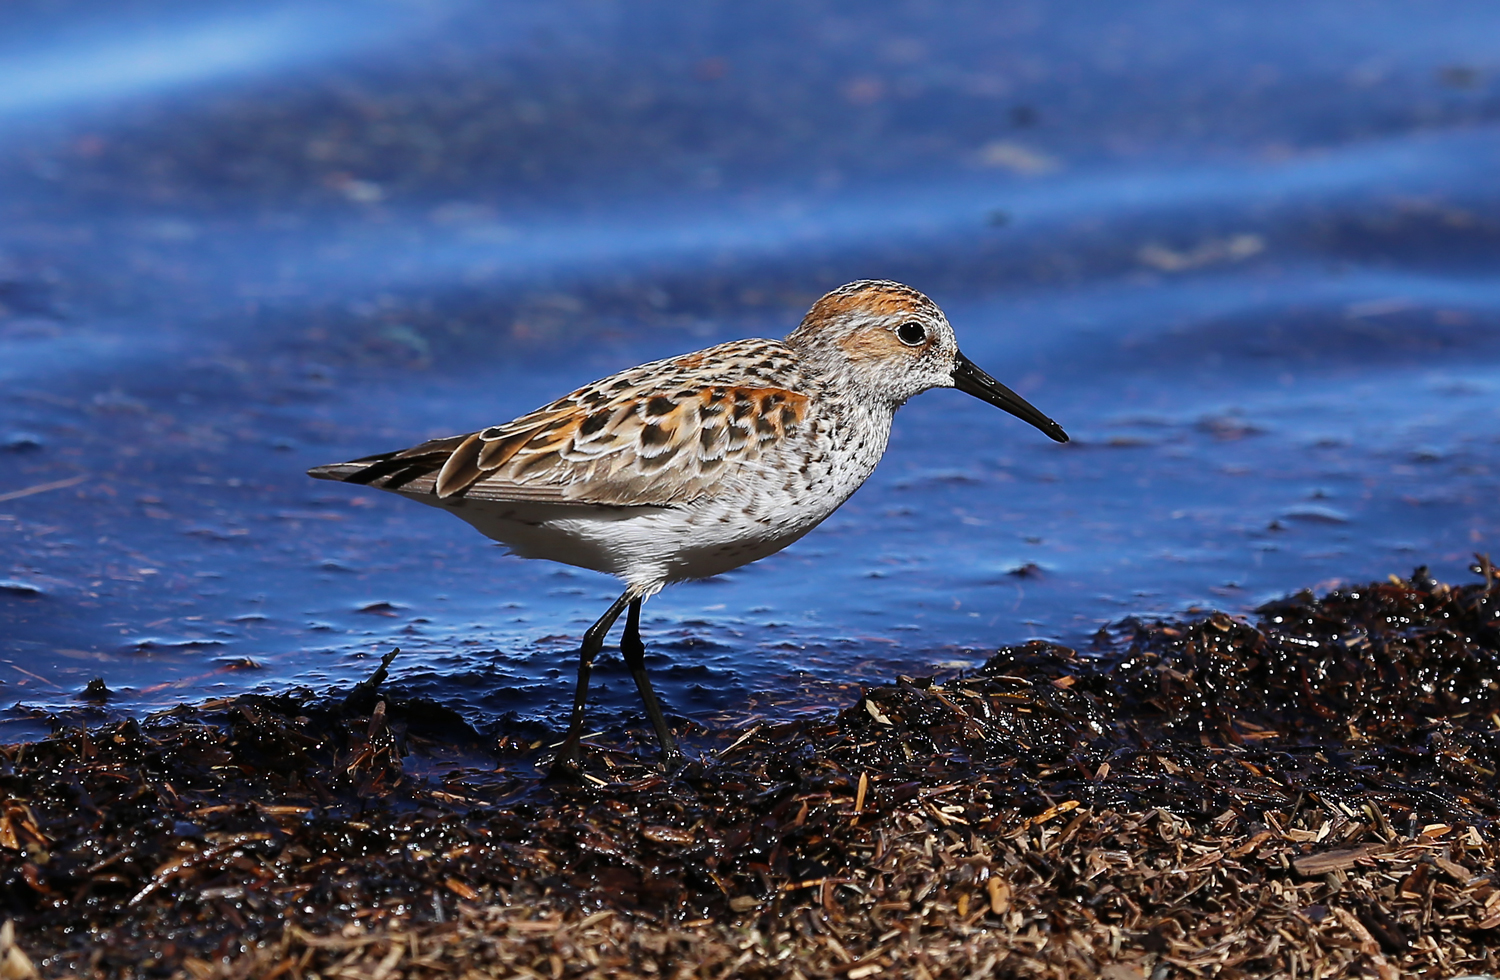 My New Buddies: Sandpipers